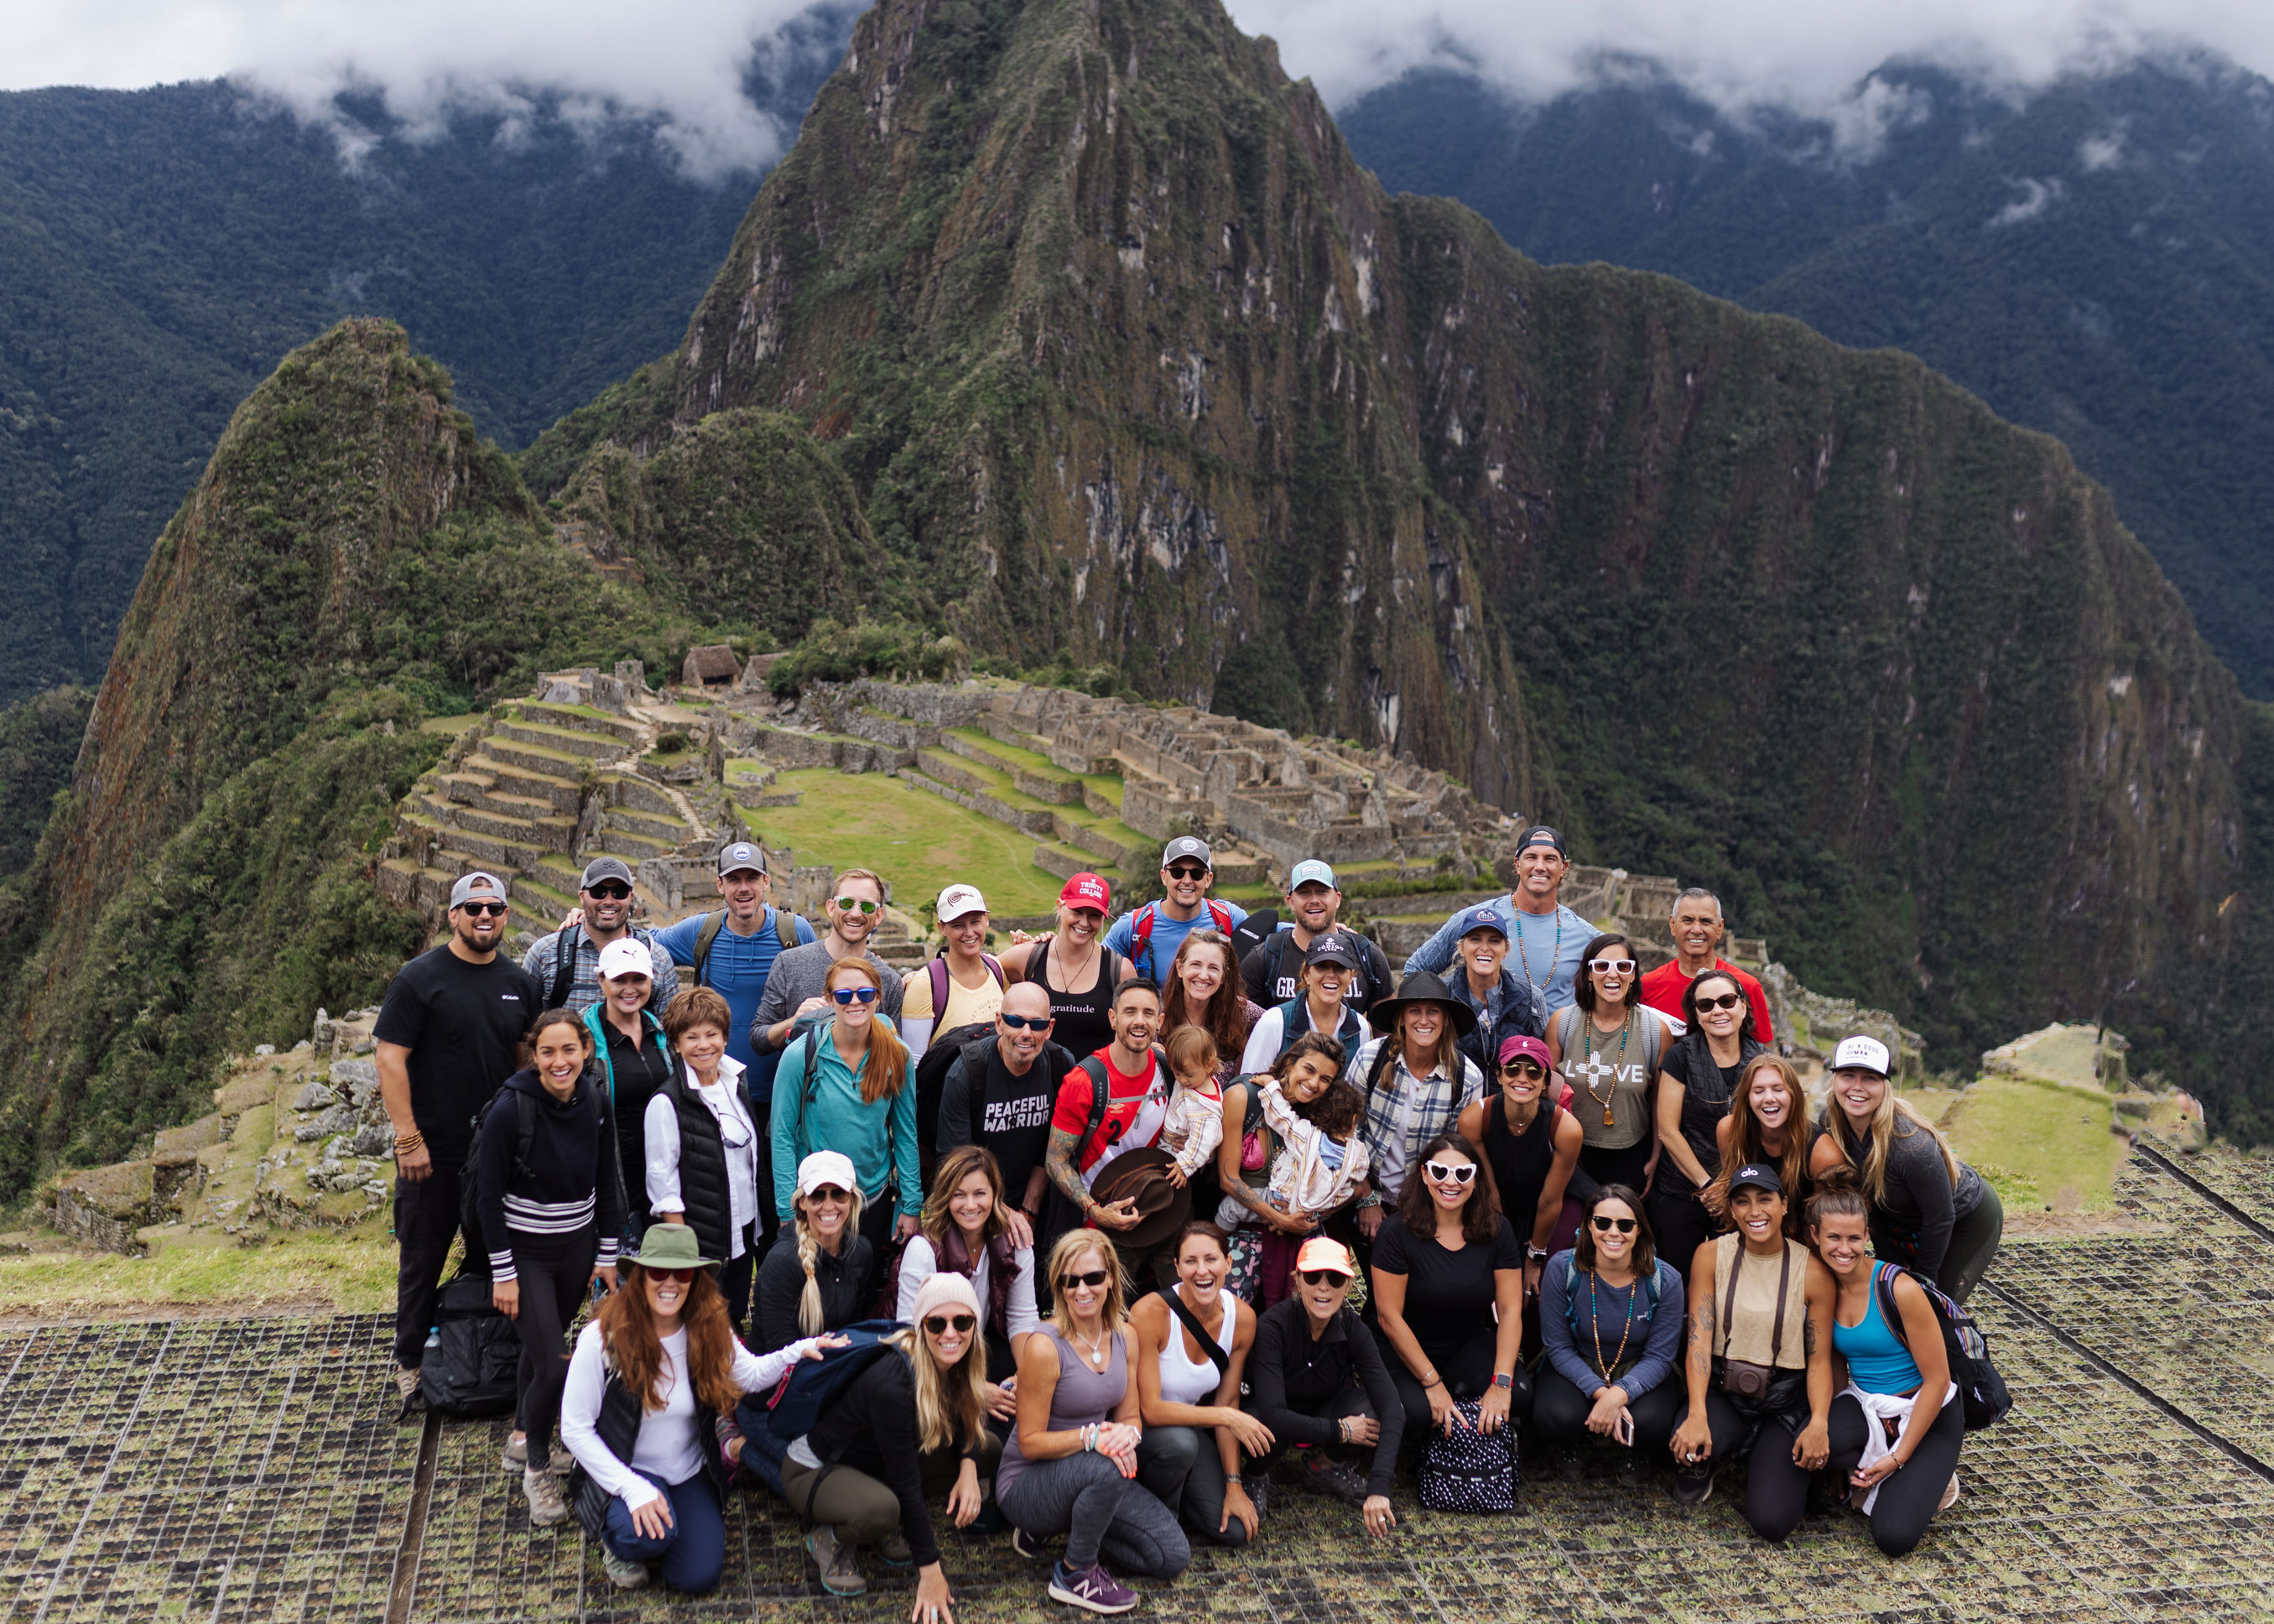 magical journey yoga retreat to Peru #machupicchu #yogaretreat #travel